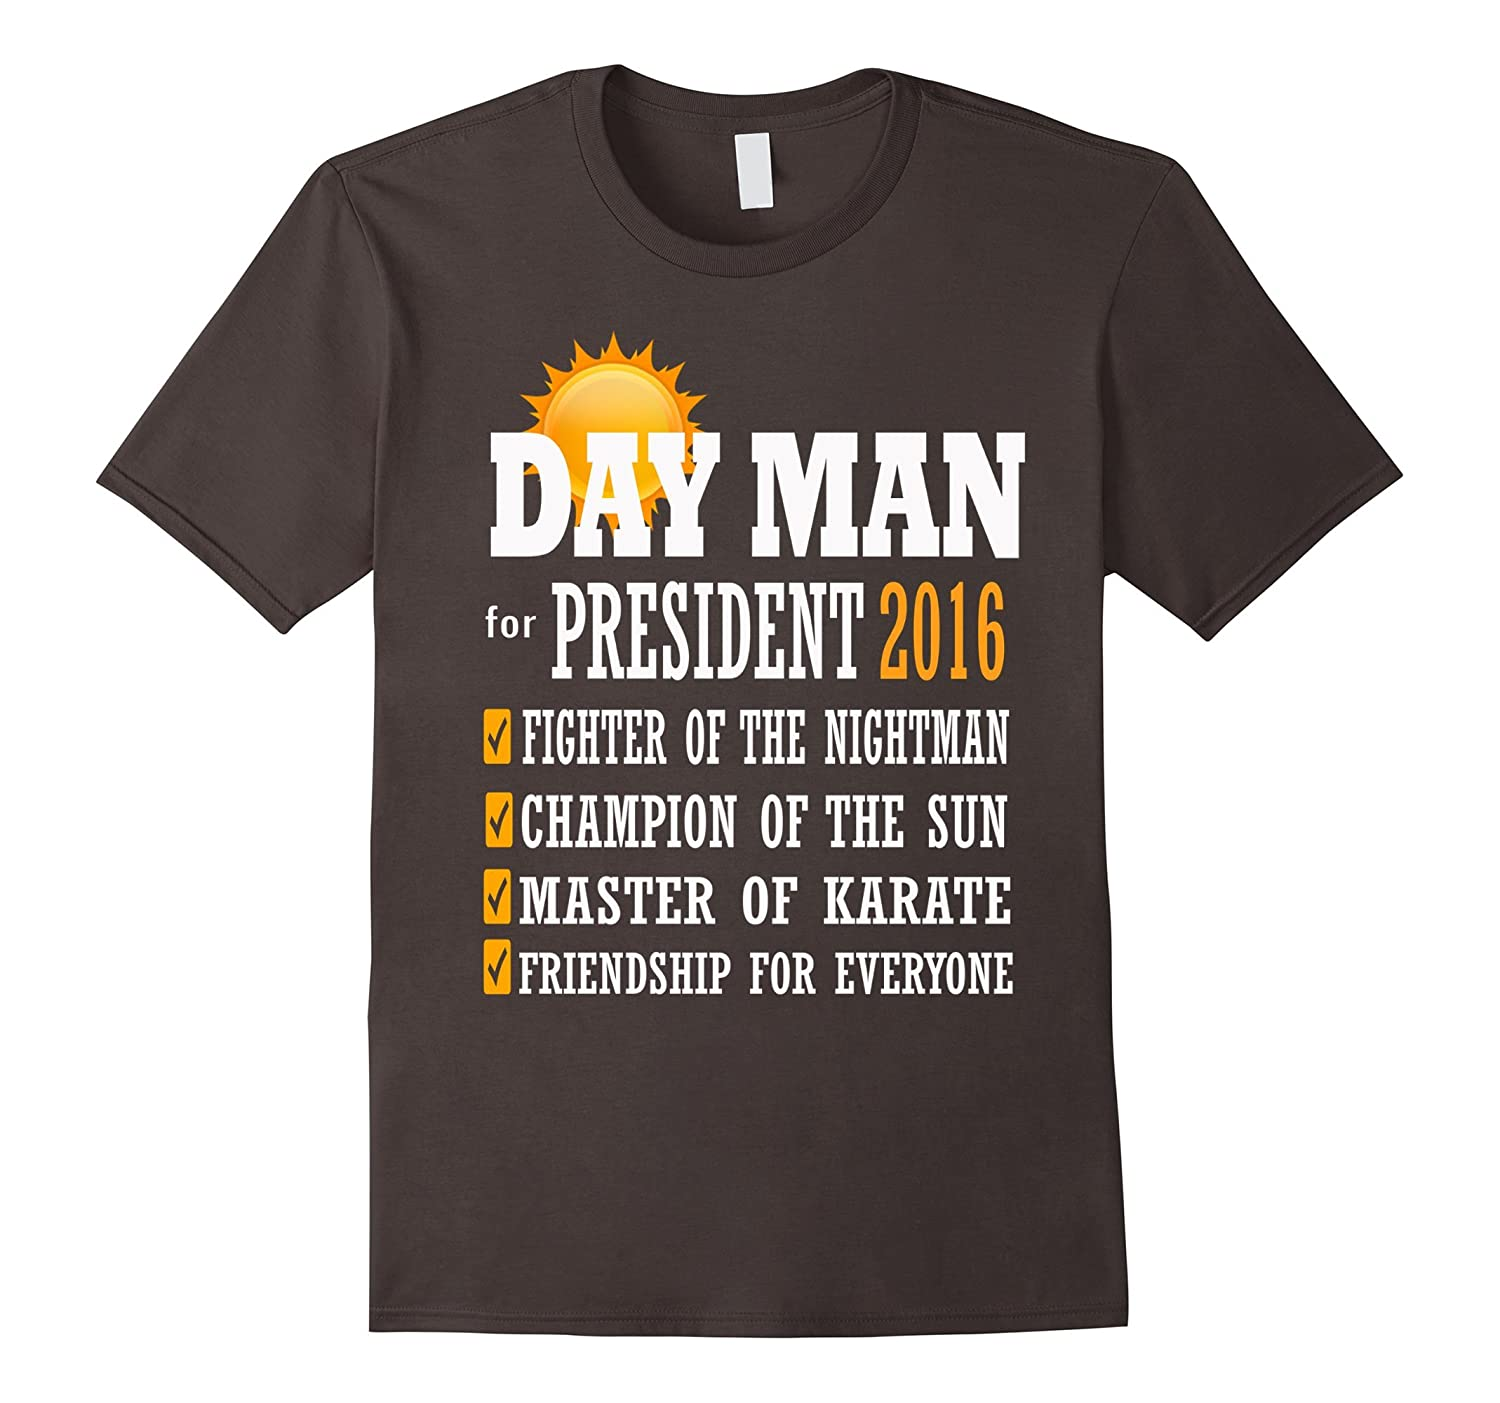 Dayman for president 2016 Sunny day T shirt-TD